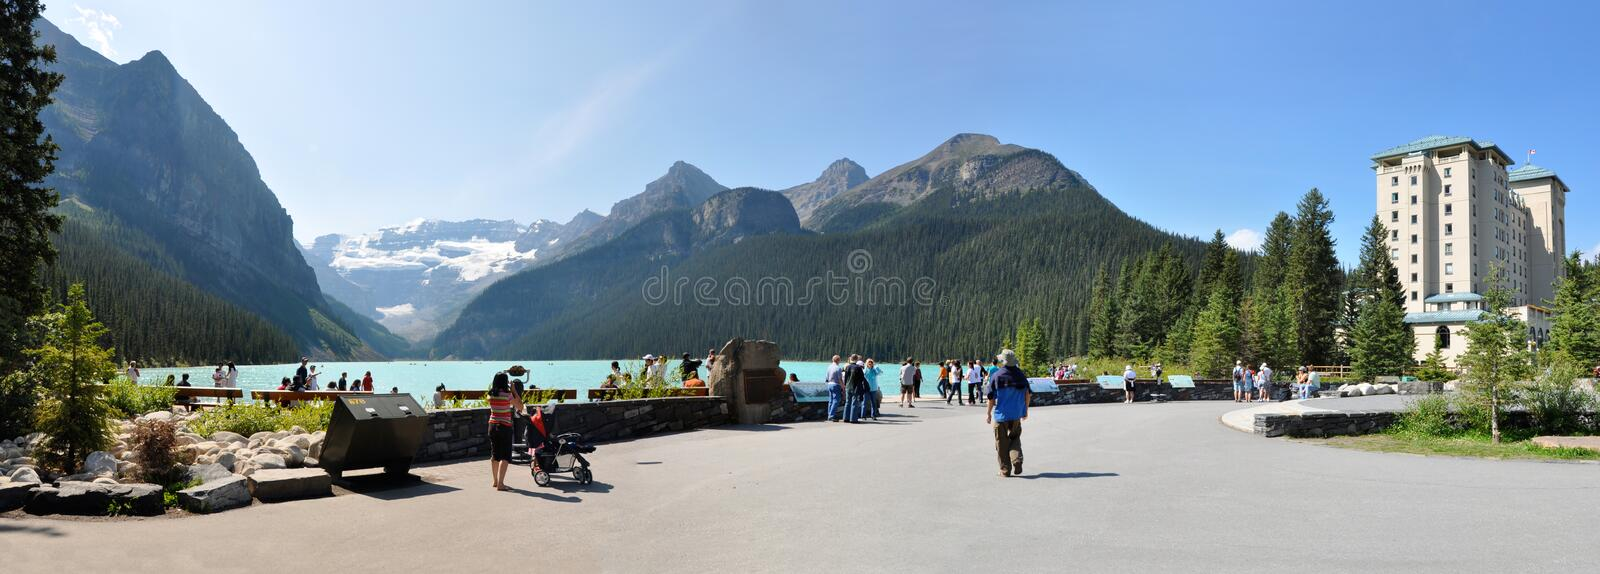 Lake Louise stockfotos